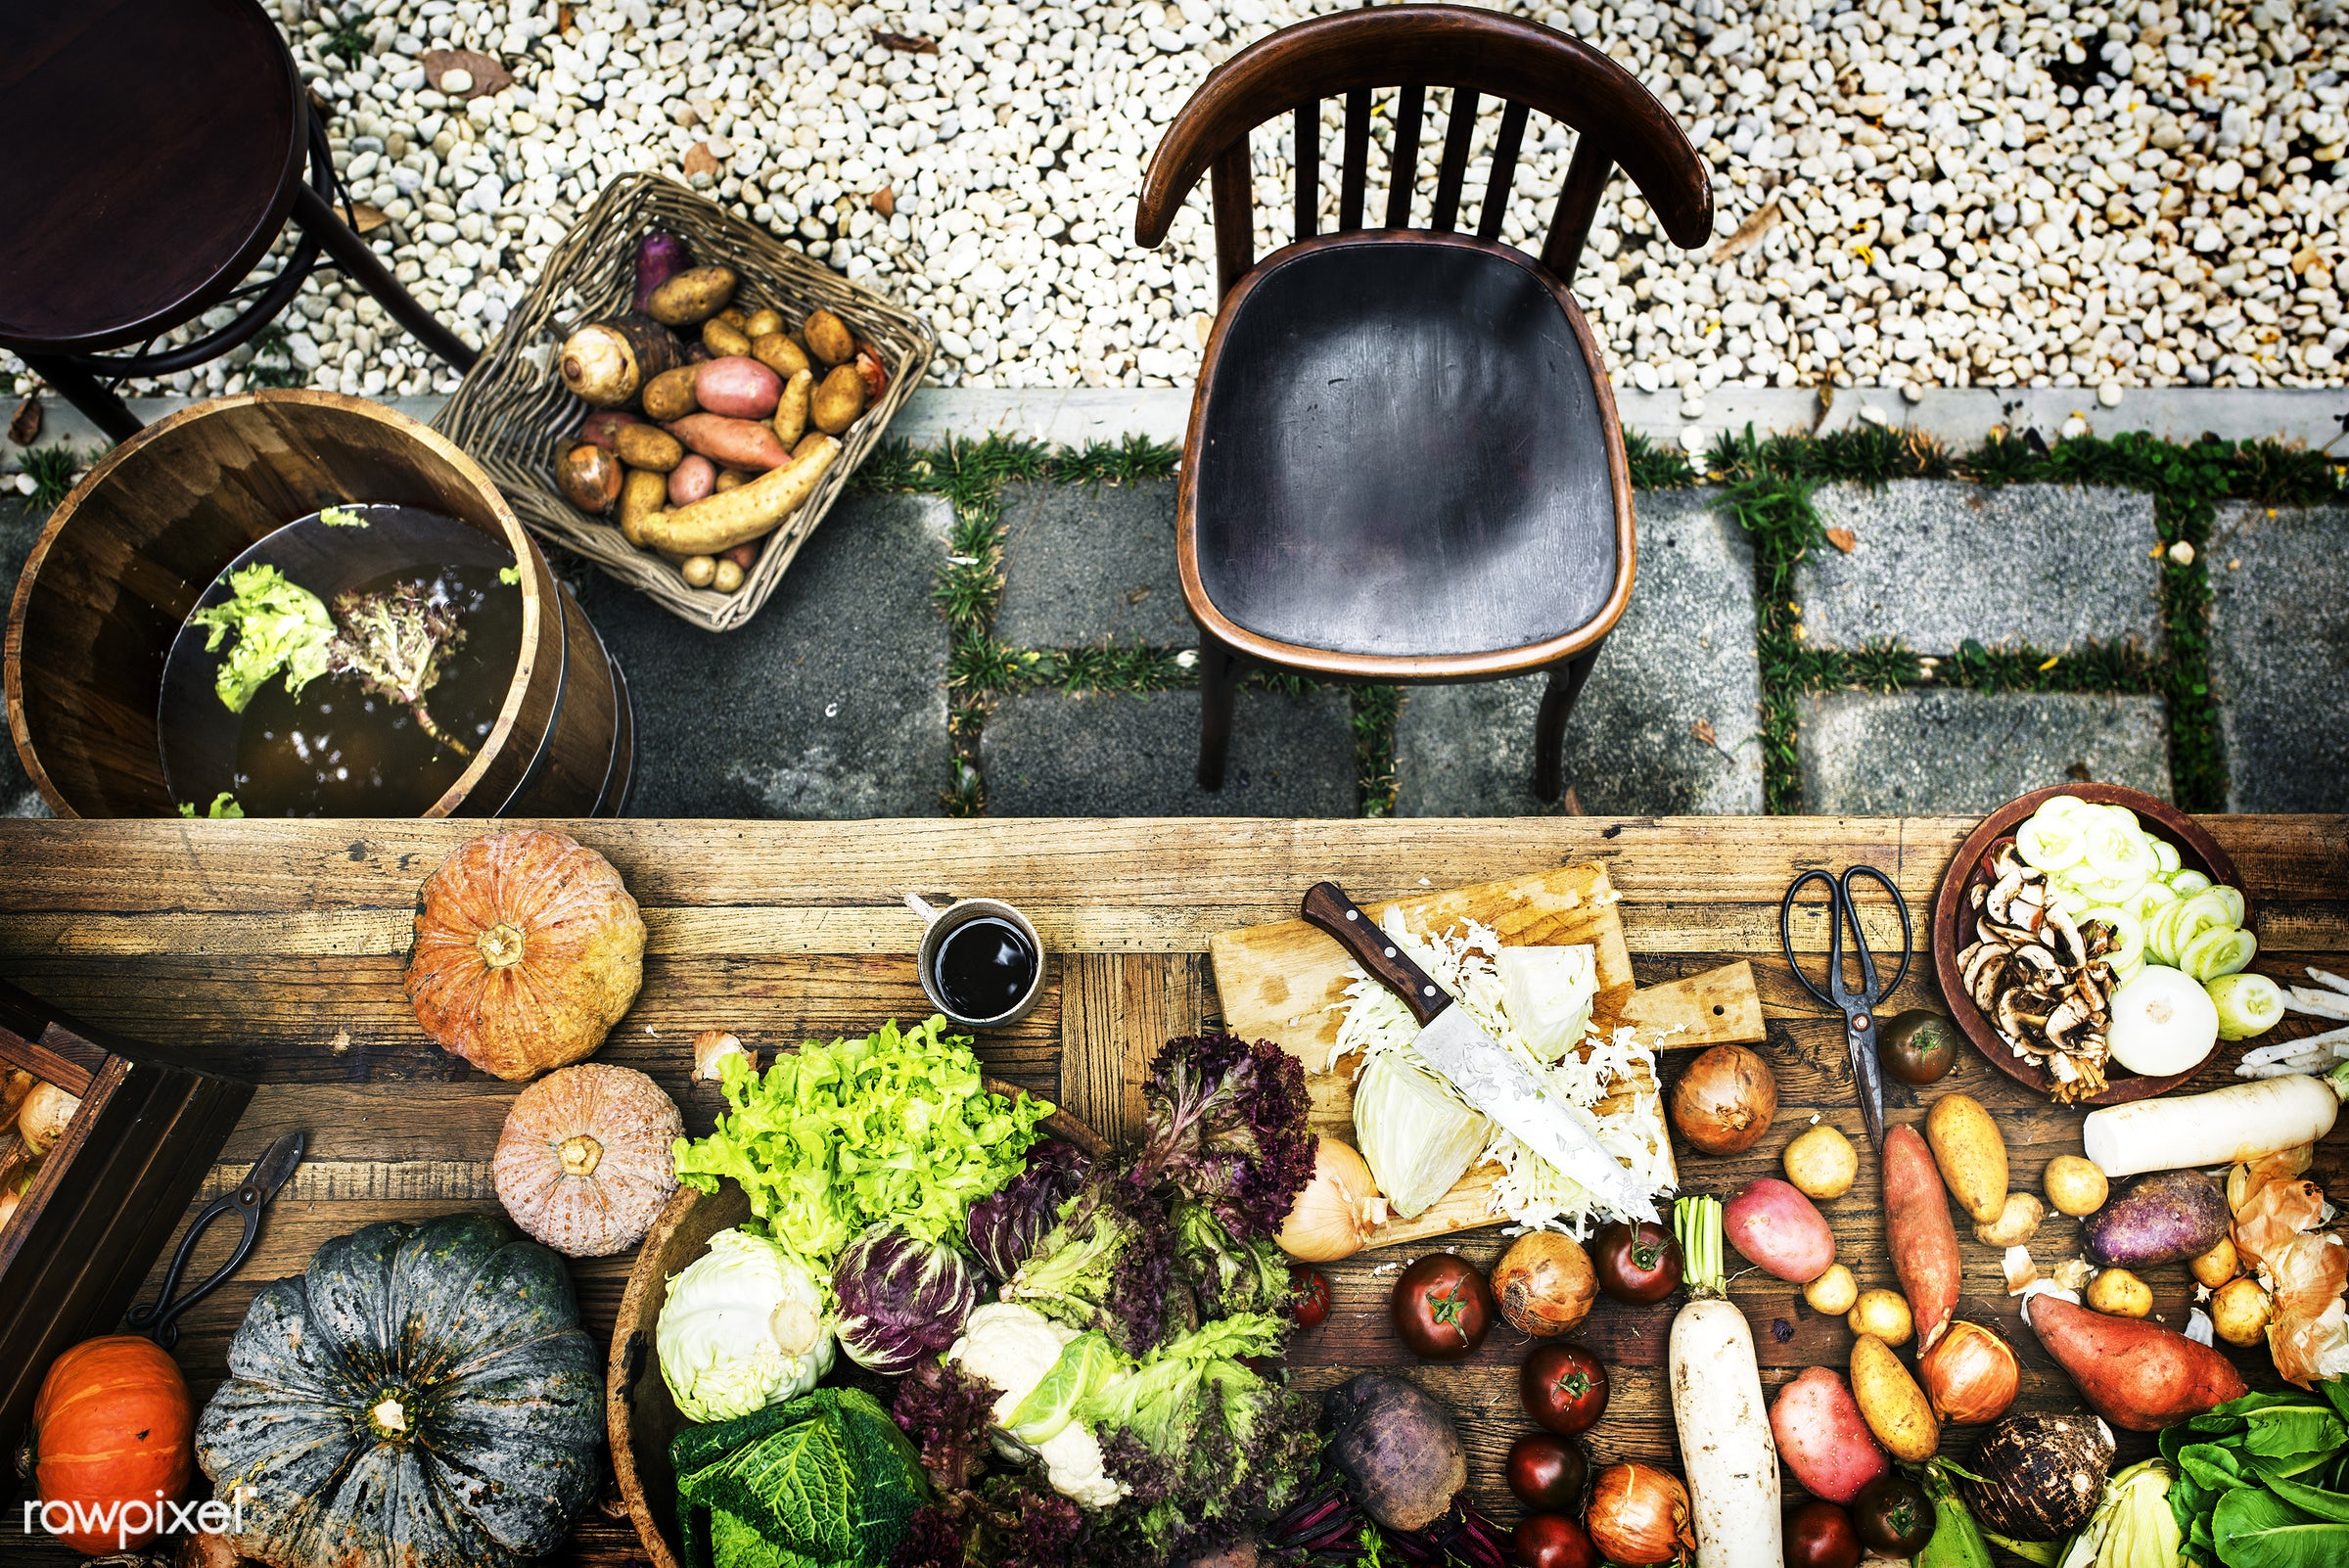 raw, nobody, ingredients, farm, chop board, real, nature, fresh, various, aerial view, products, closeup, knife, meal, cook...